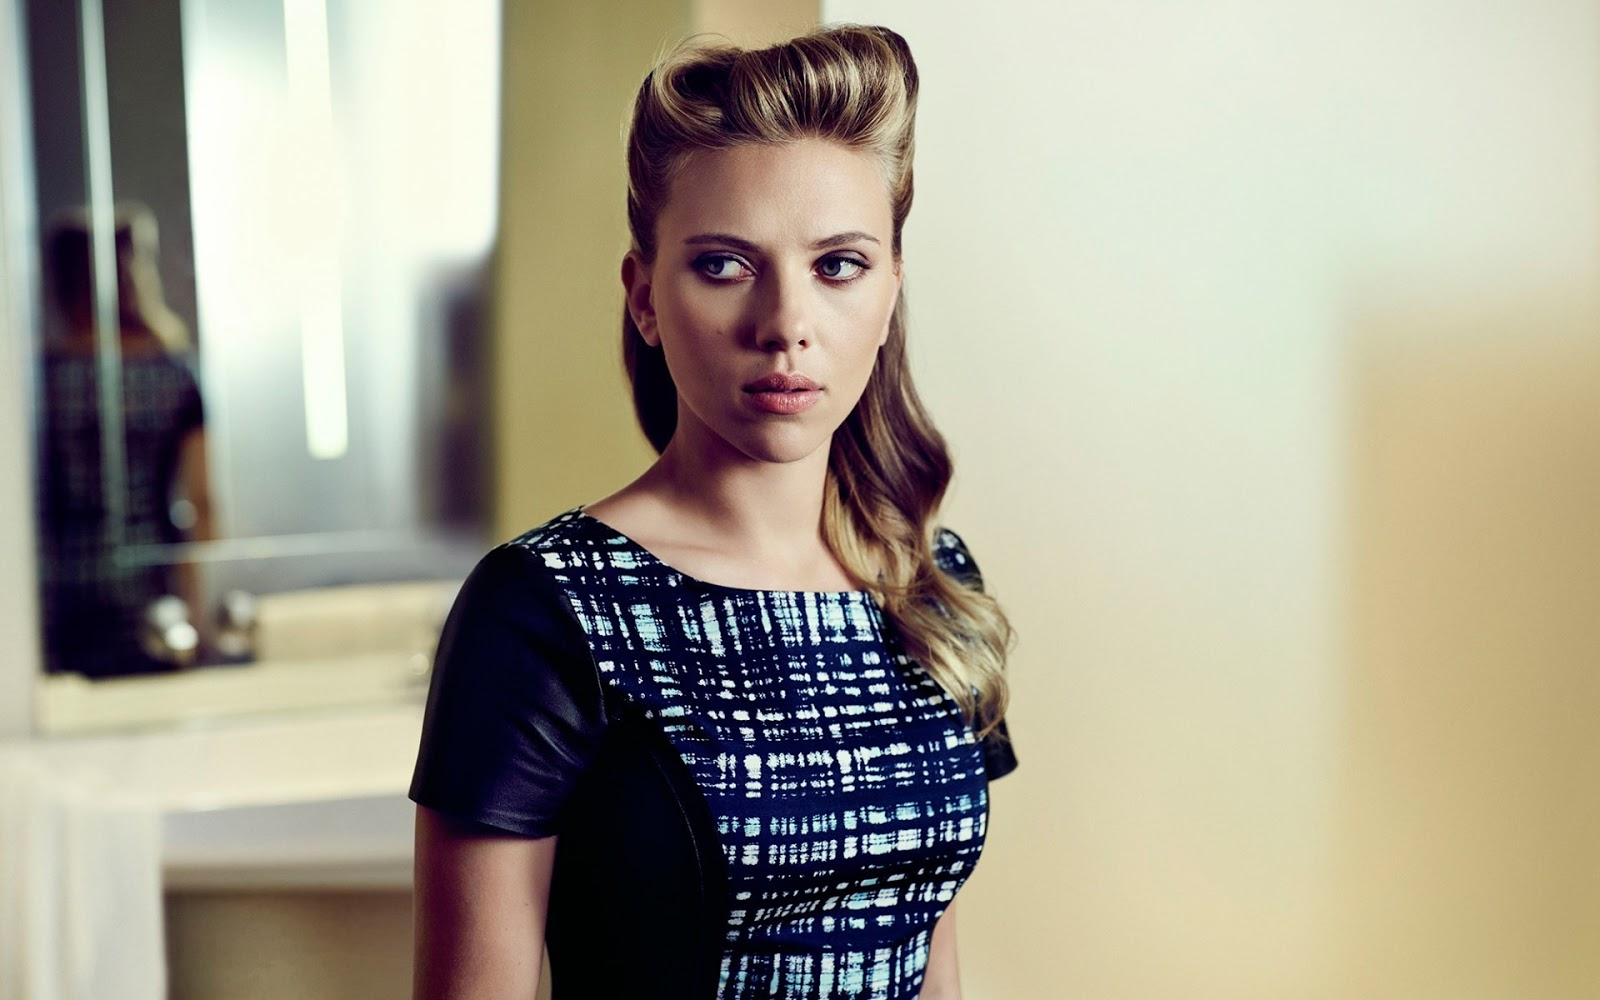 Scarlett Johansson Wallpaper: Scarlett Johansson Wallpapers